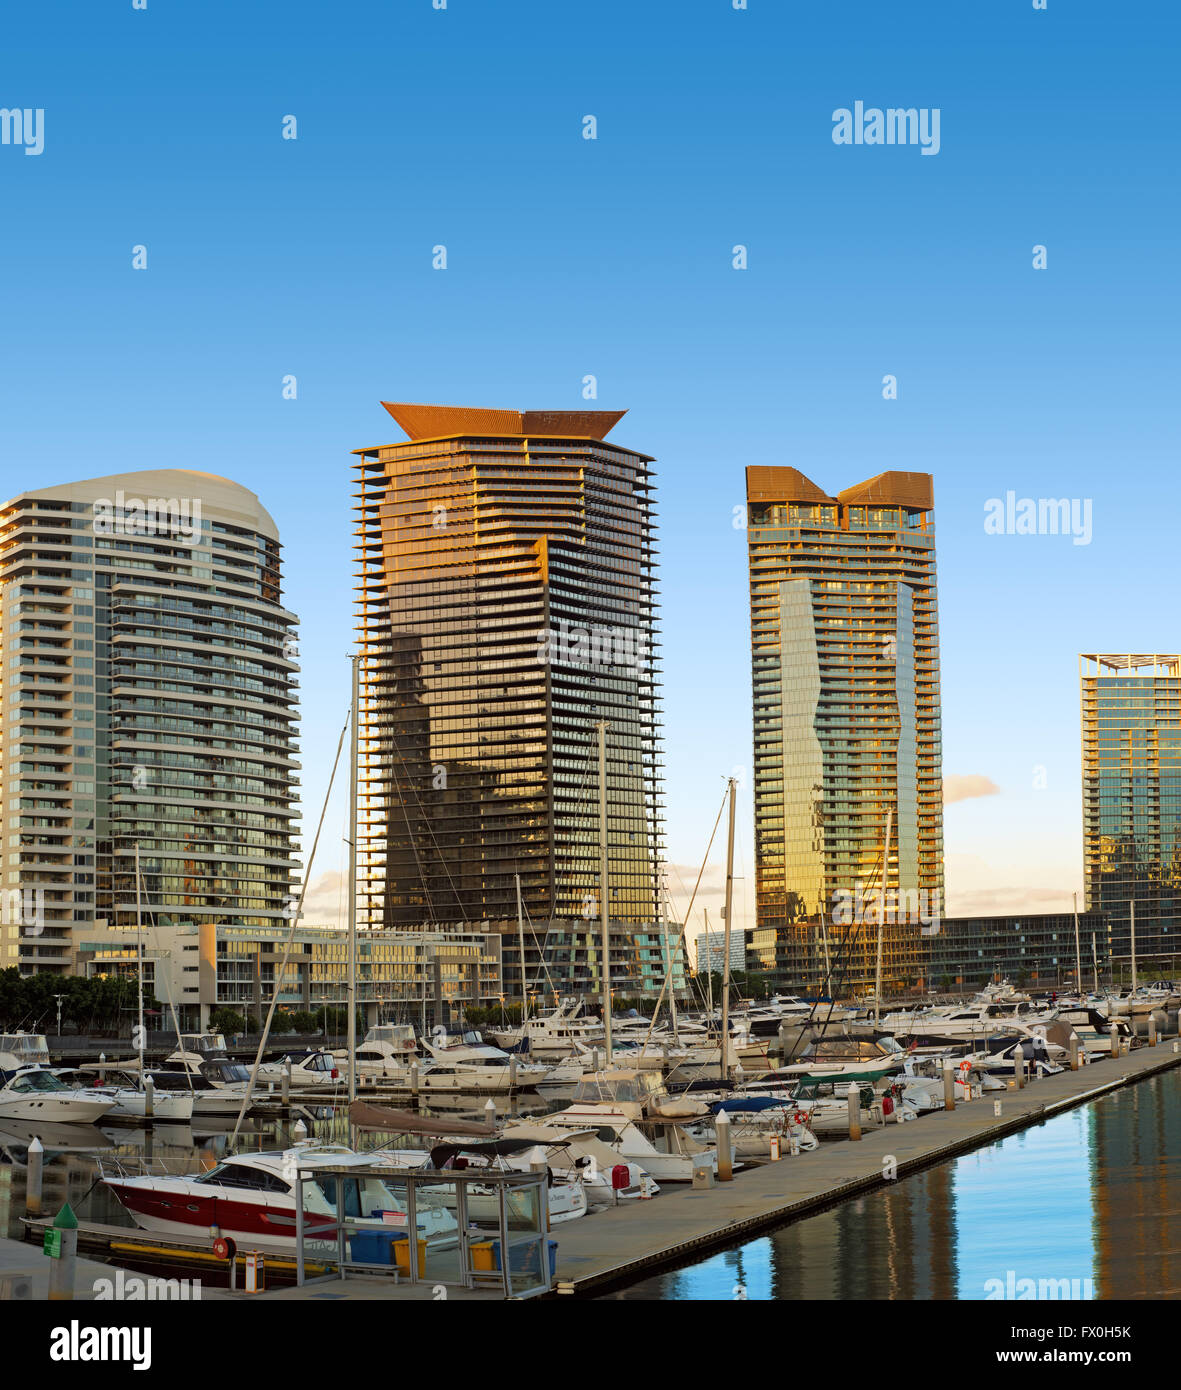 A photo of high apartment buildings in the waterfront at Docklands, Melbourne, Australia. - Stock Image